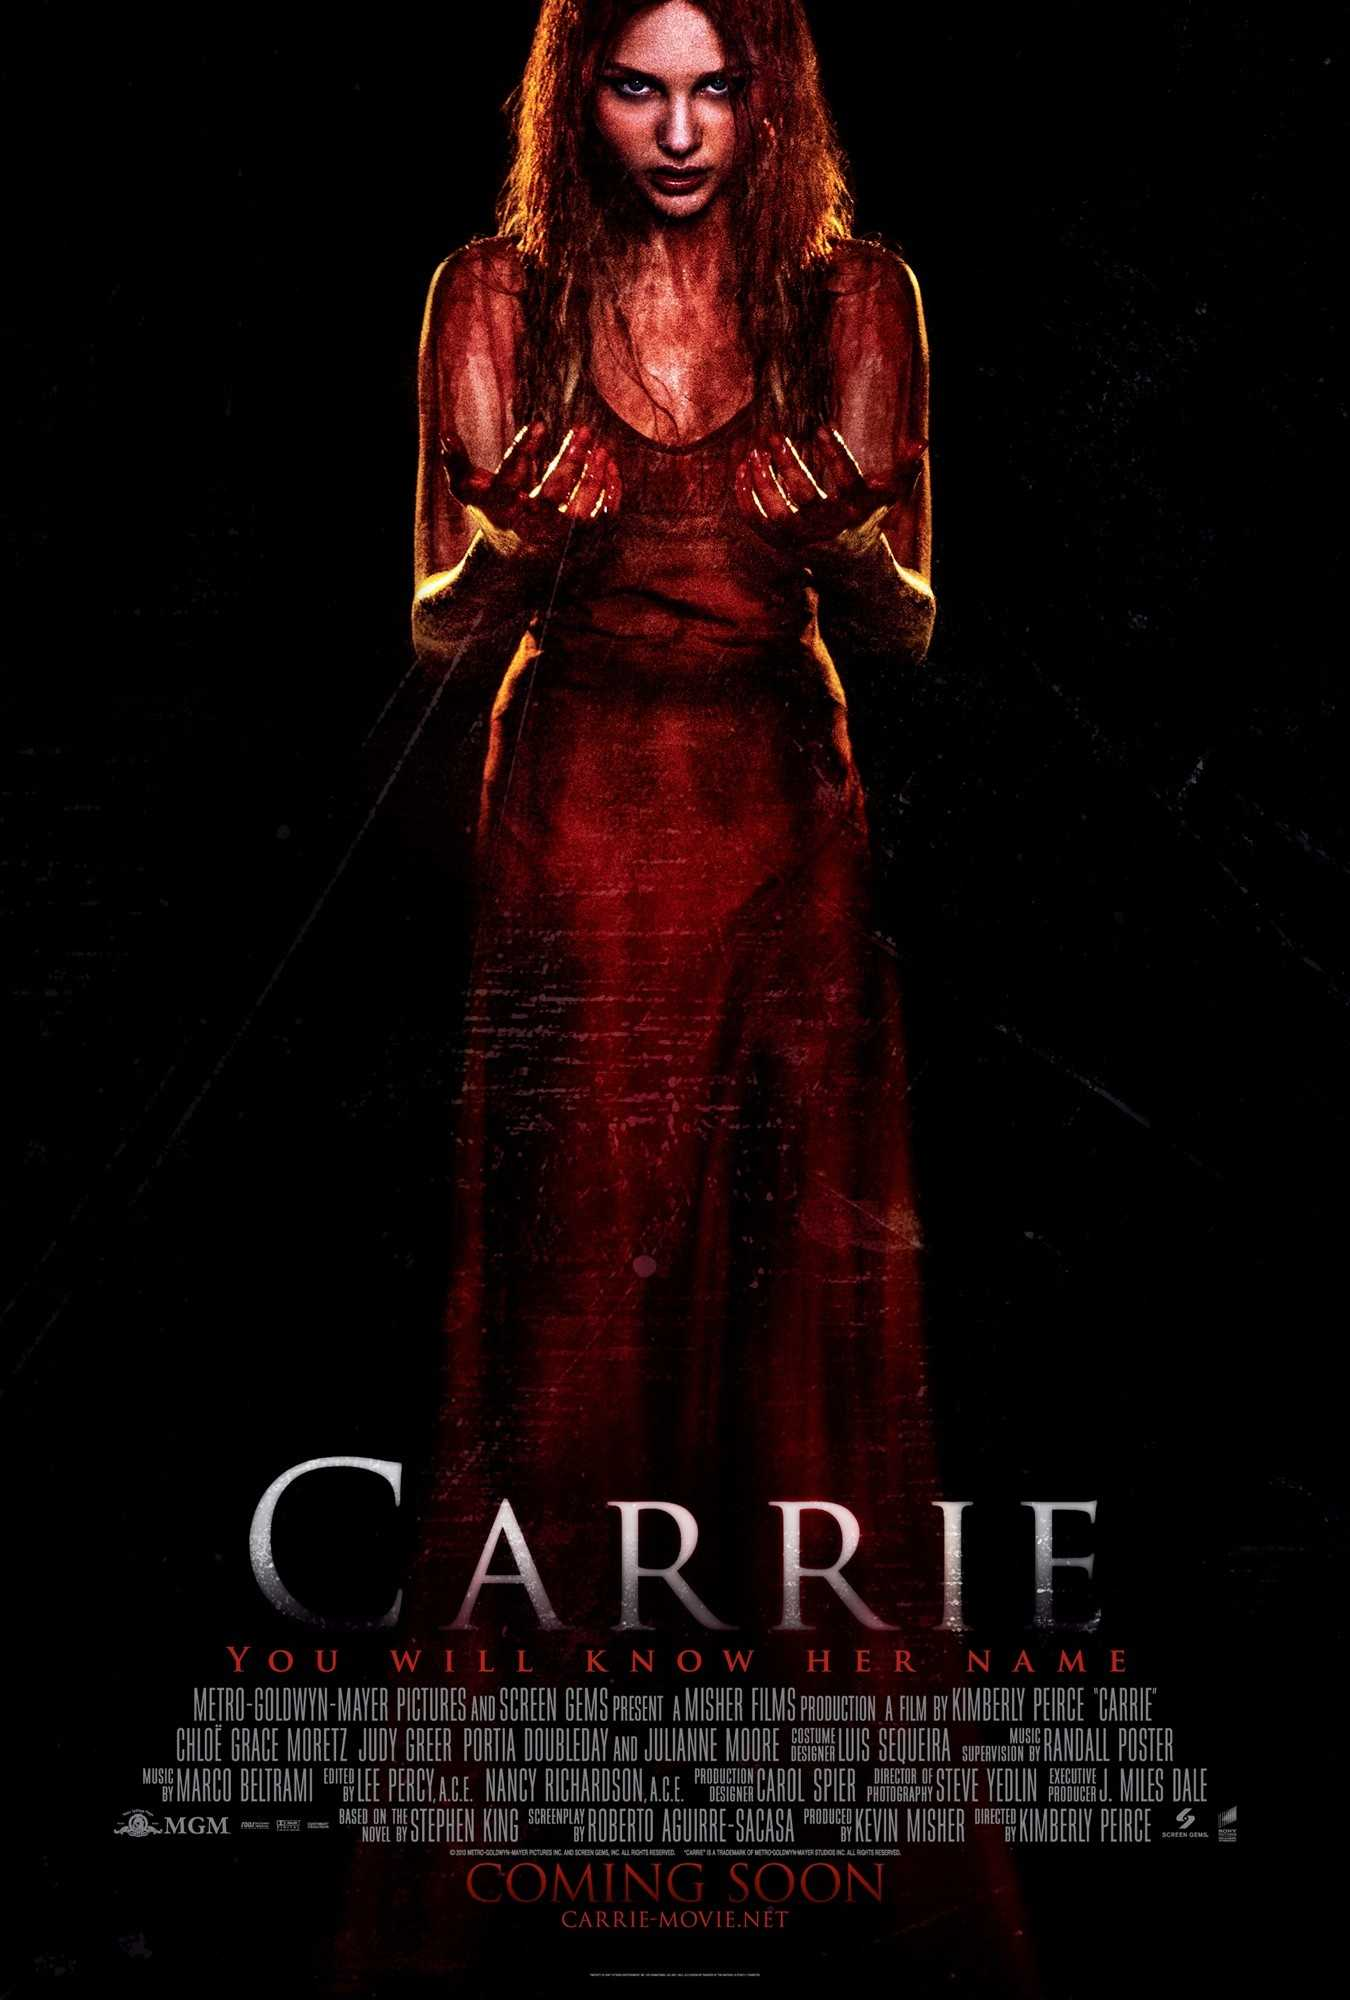 Julianne Moore Sends Chloe Moretz To Her Closet In New Carrie Clip